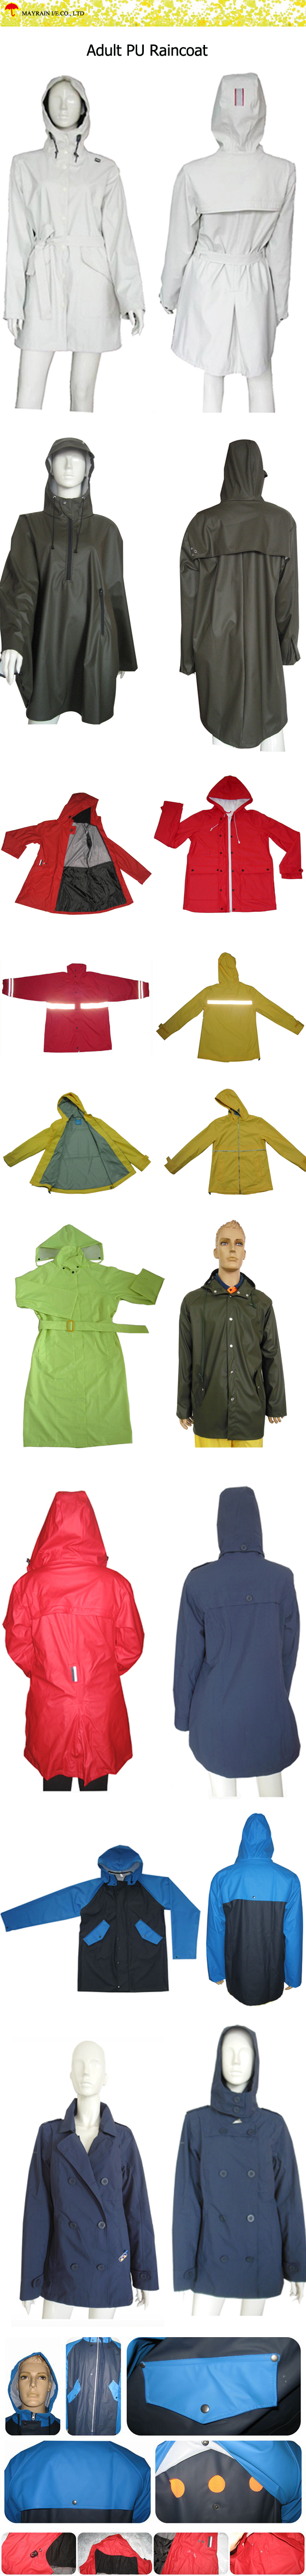 Adult PU Raincoat